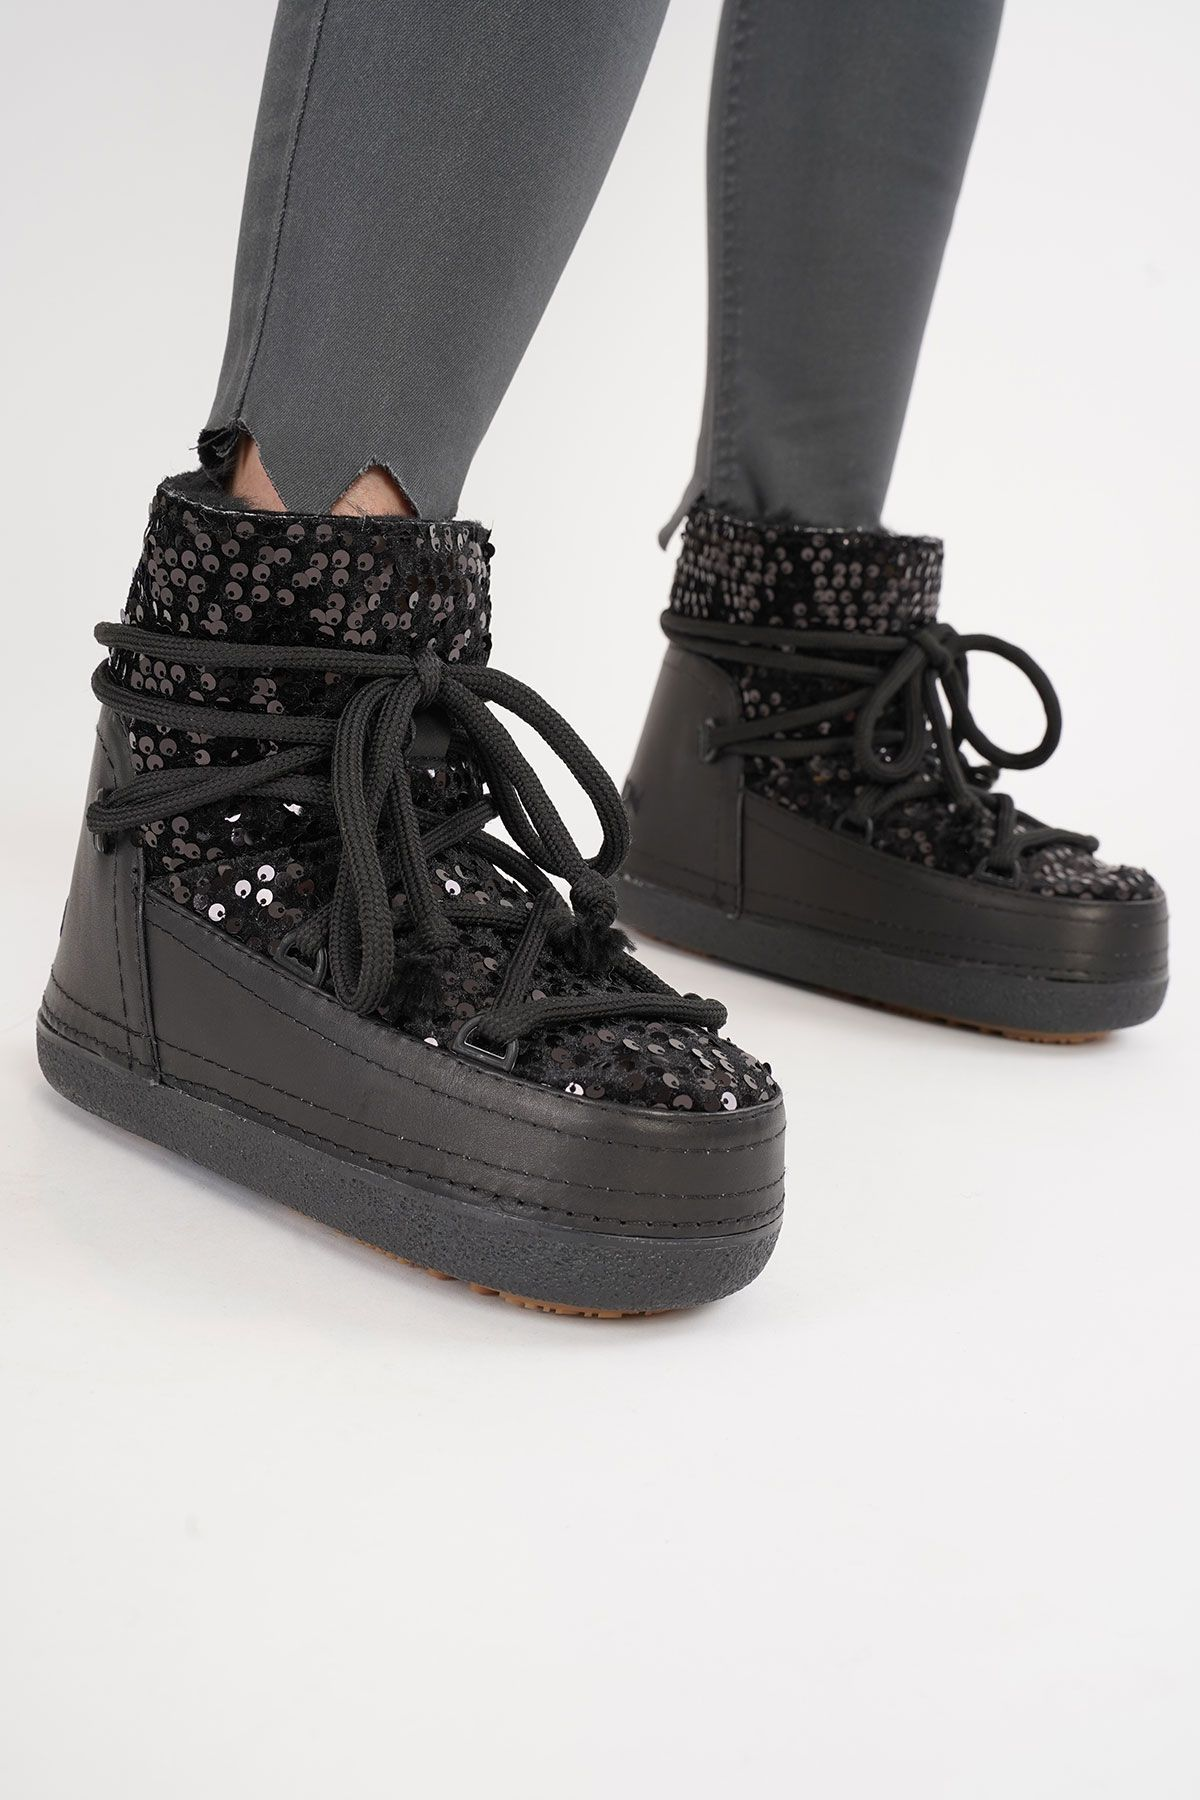 Cool Moon Sheepskin Women's Snow Boots With Sequin 251321 Black